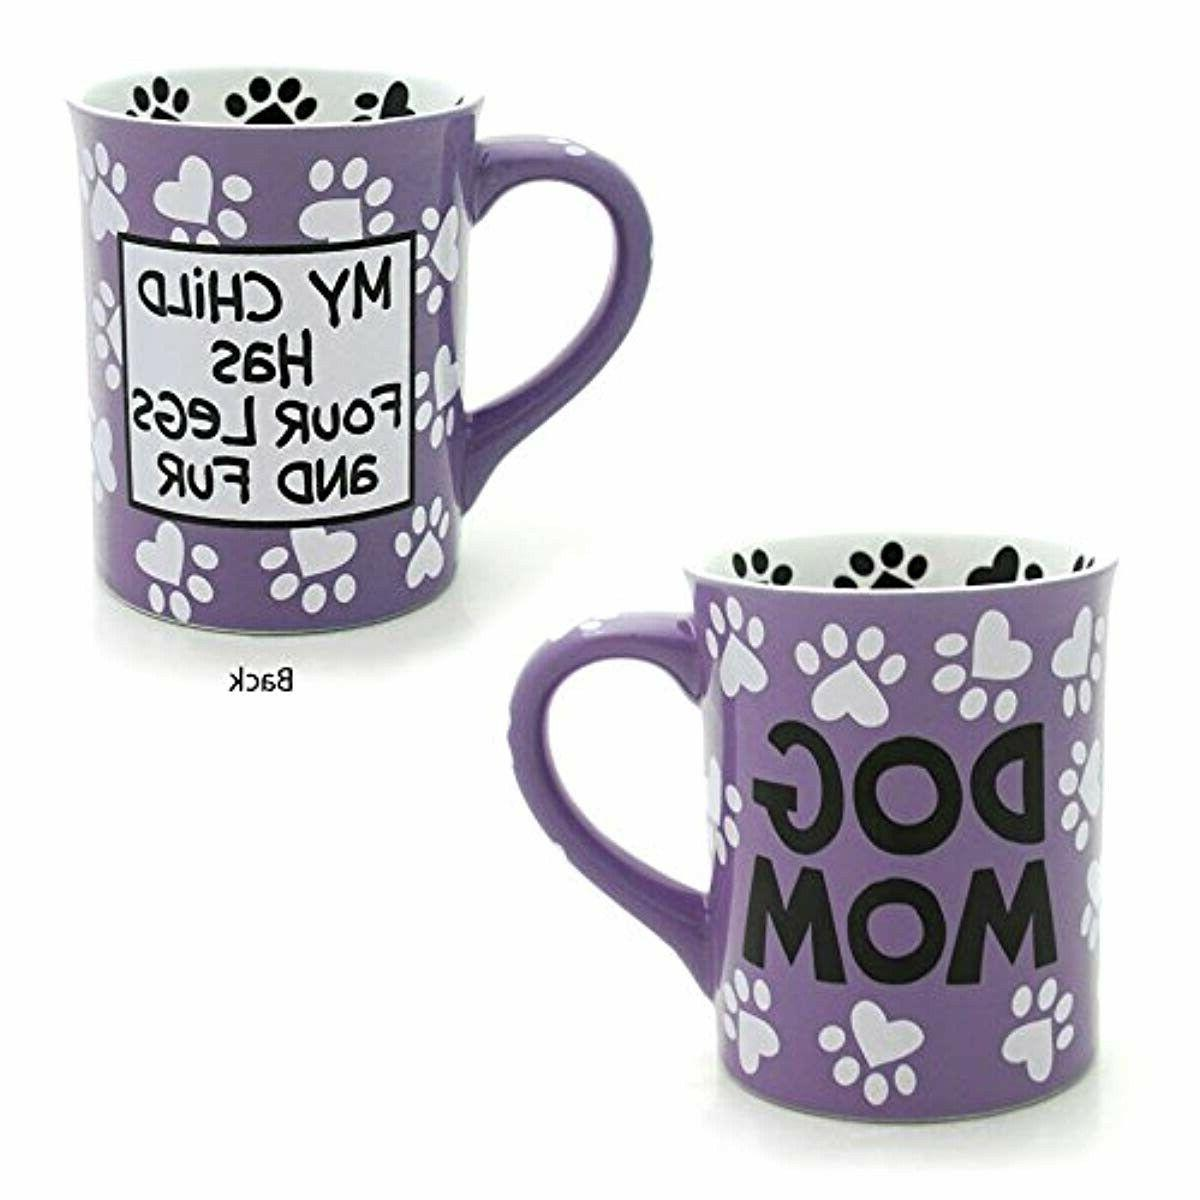 4026112 our name is mud dog mom